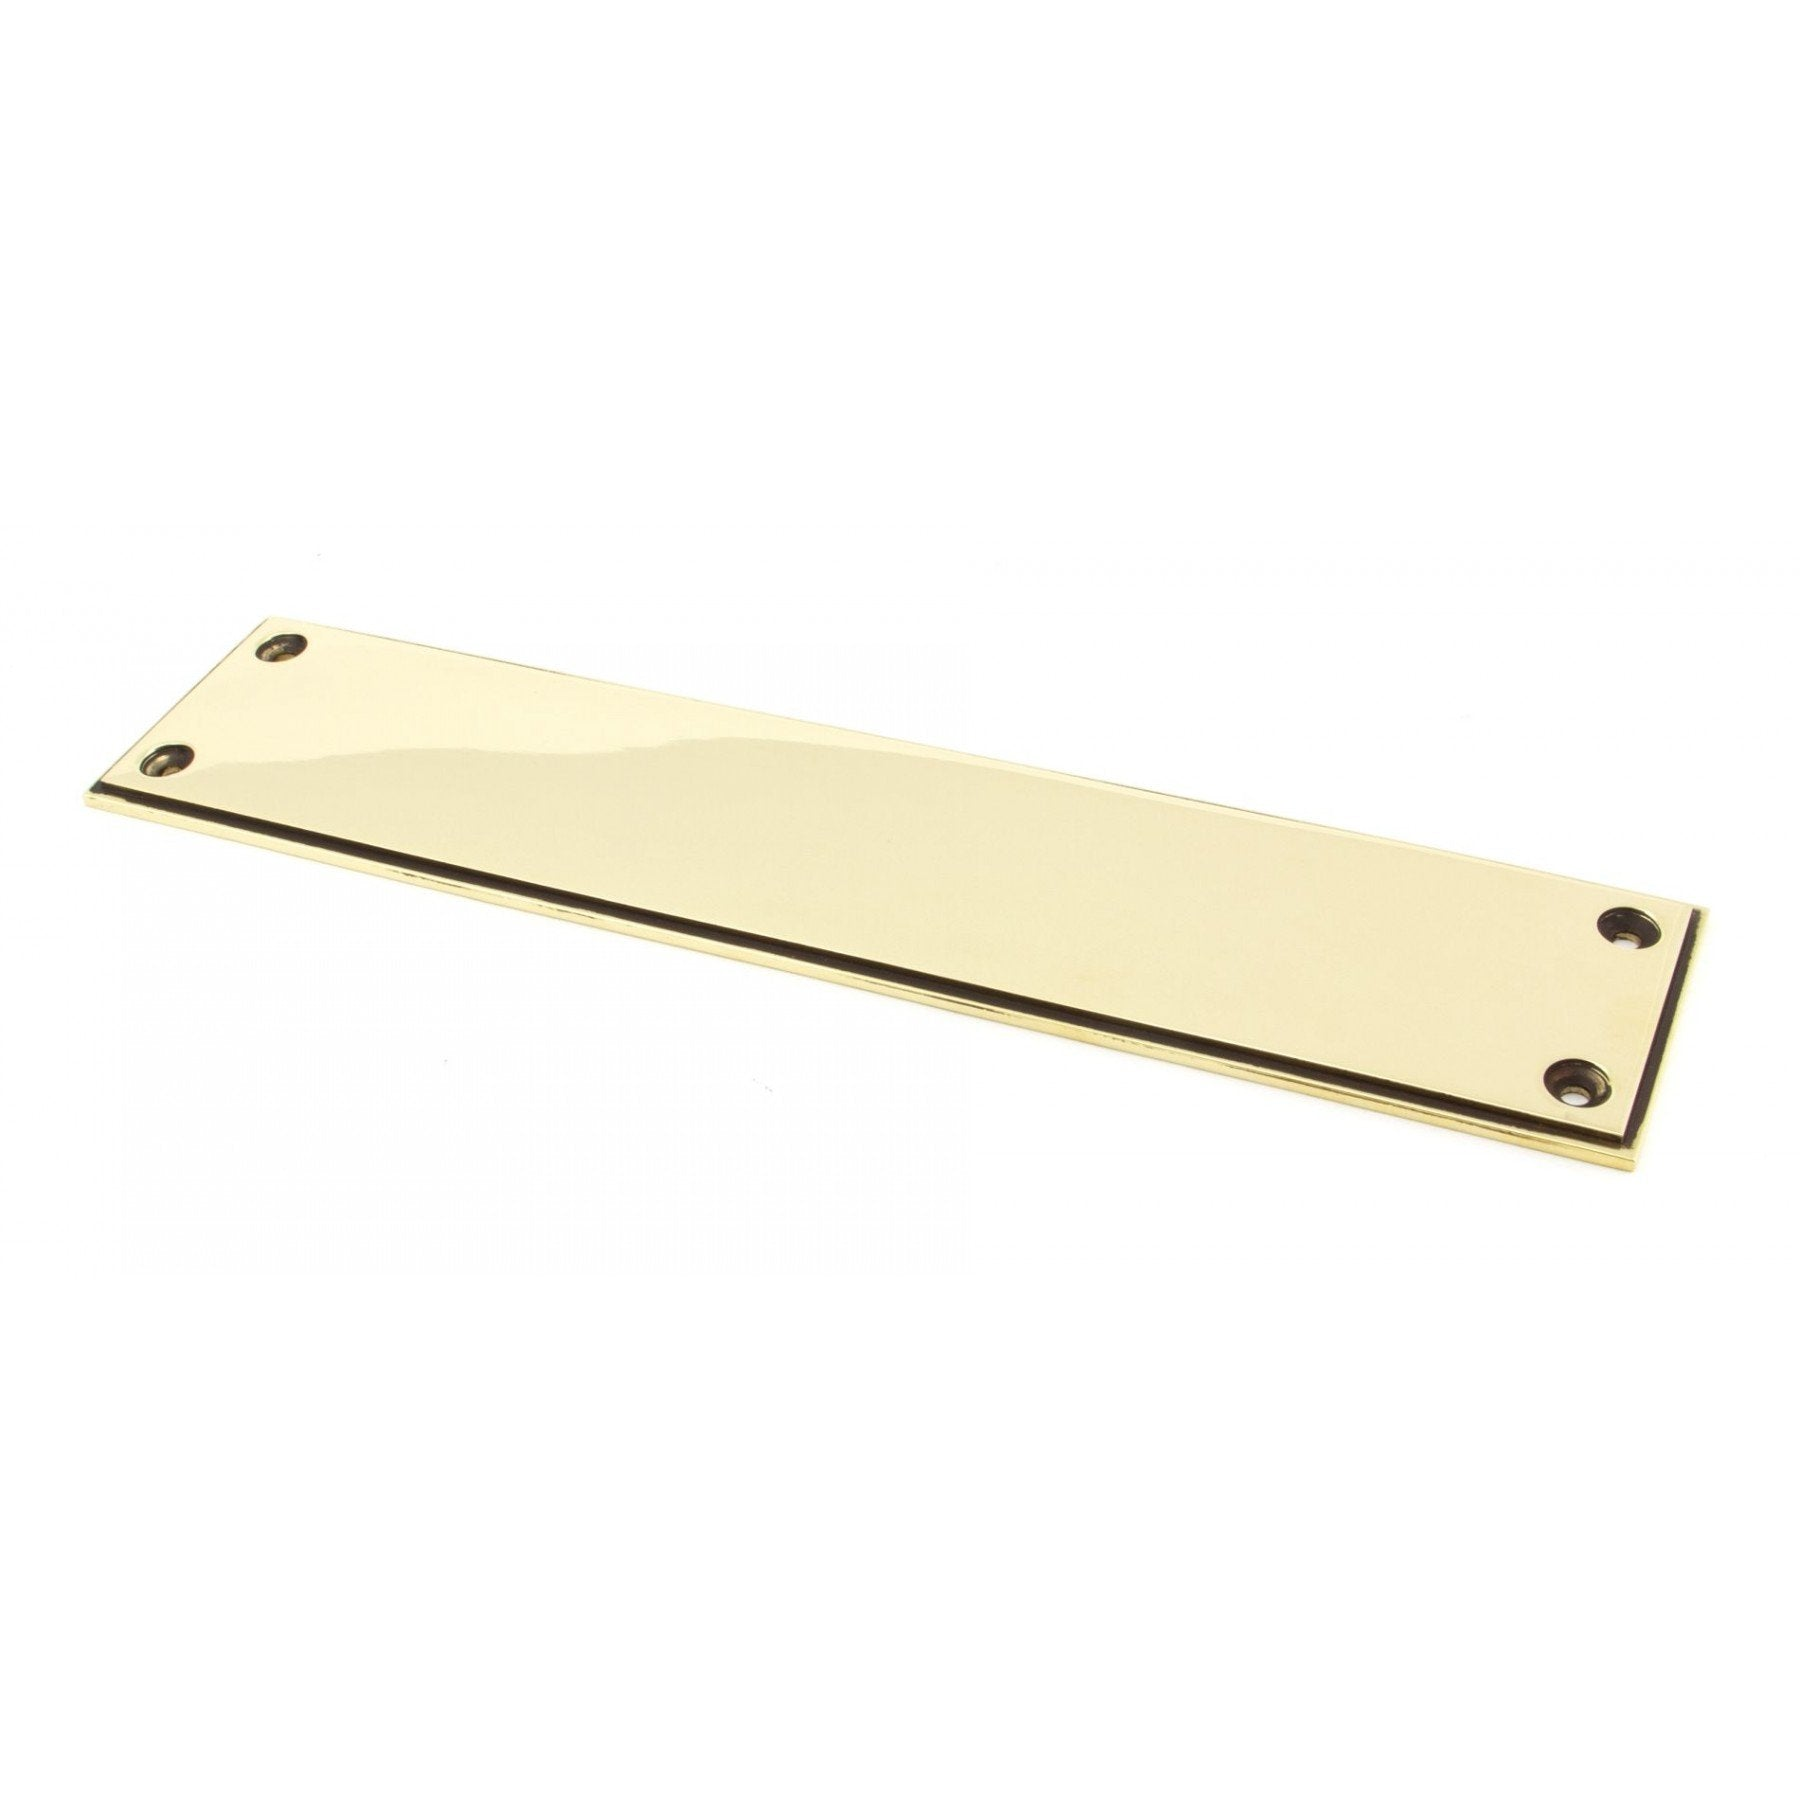 Aged Brass 300mm Art Deco Fingerplate - No.42 Interiors